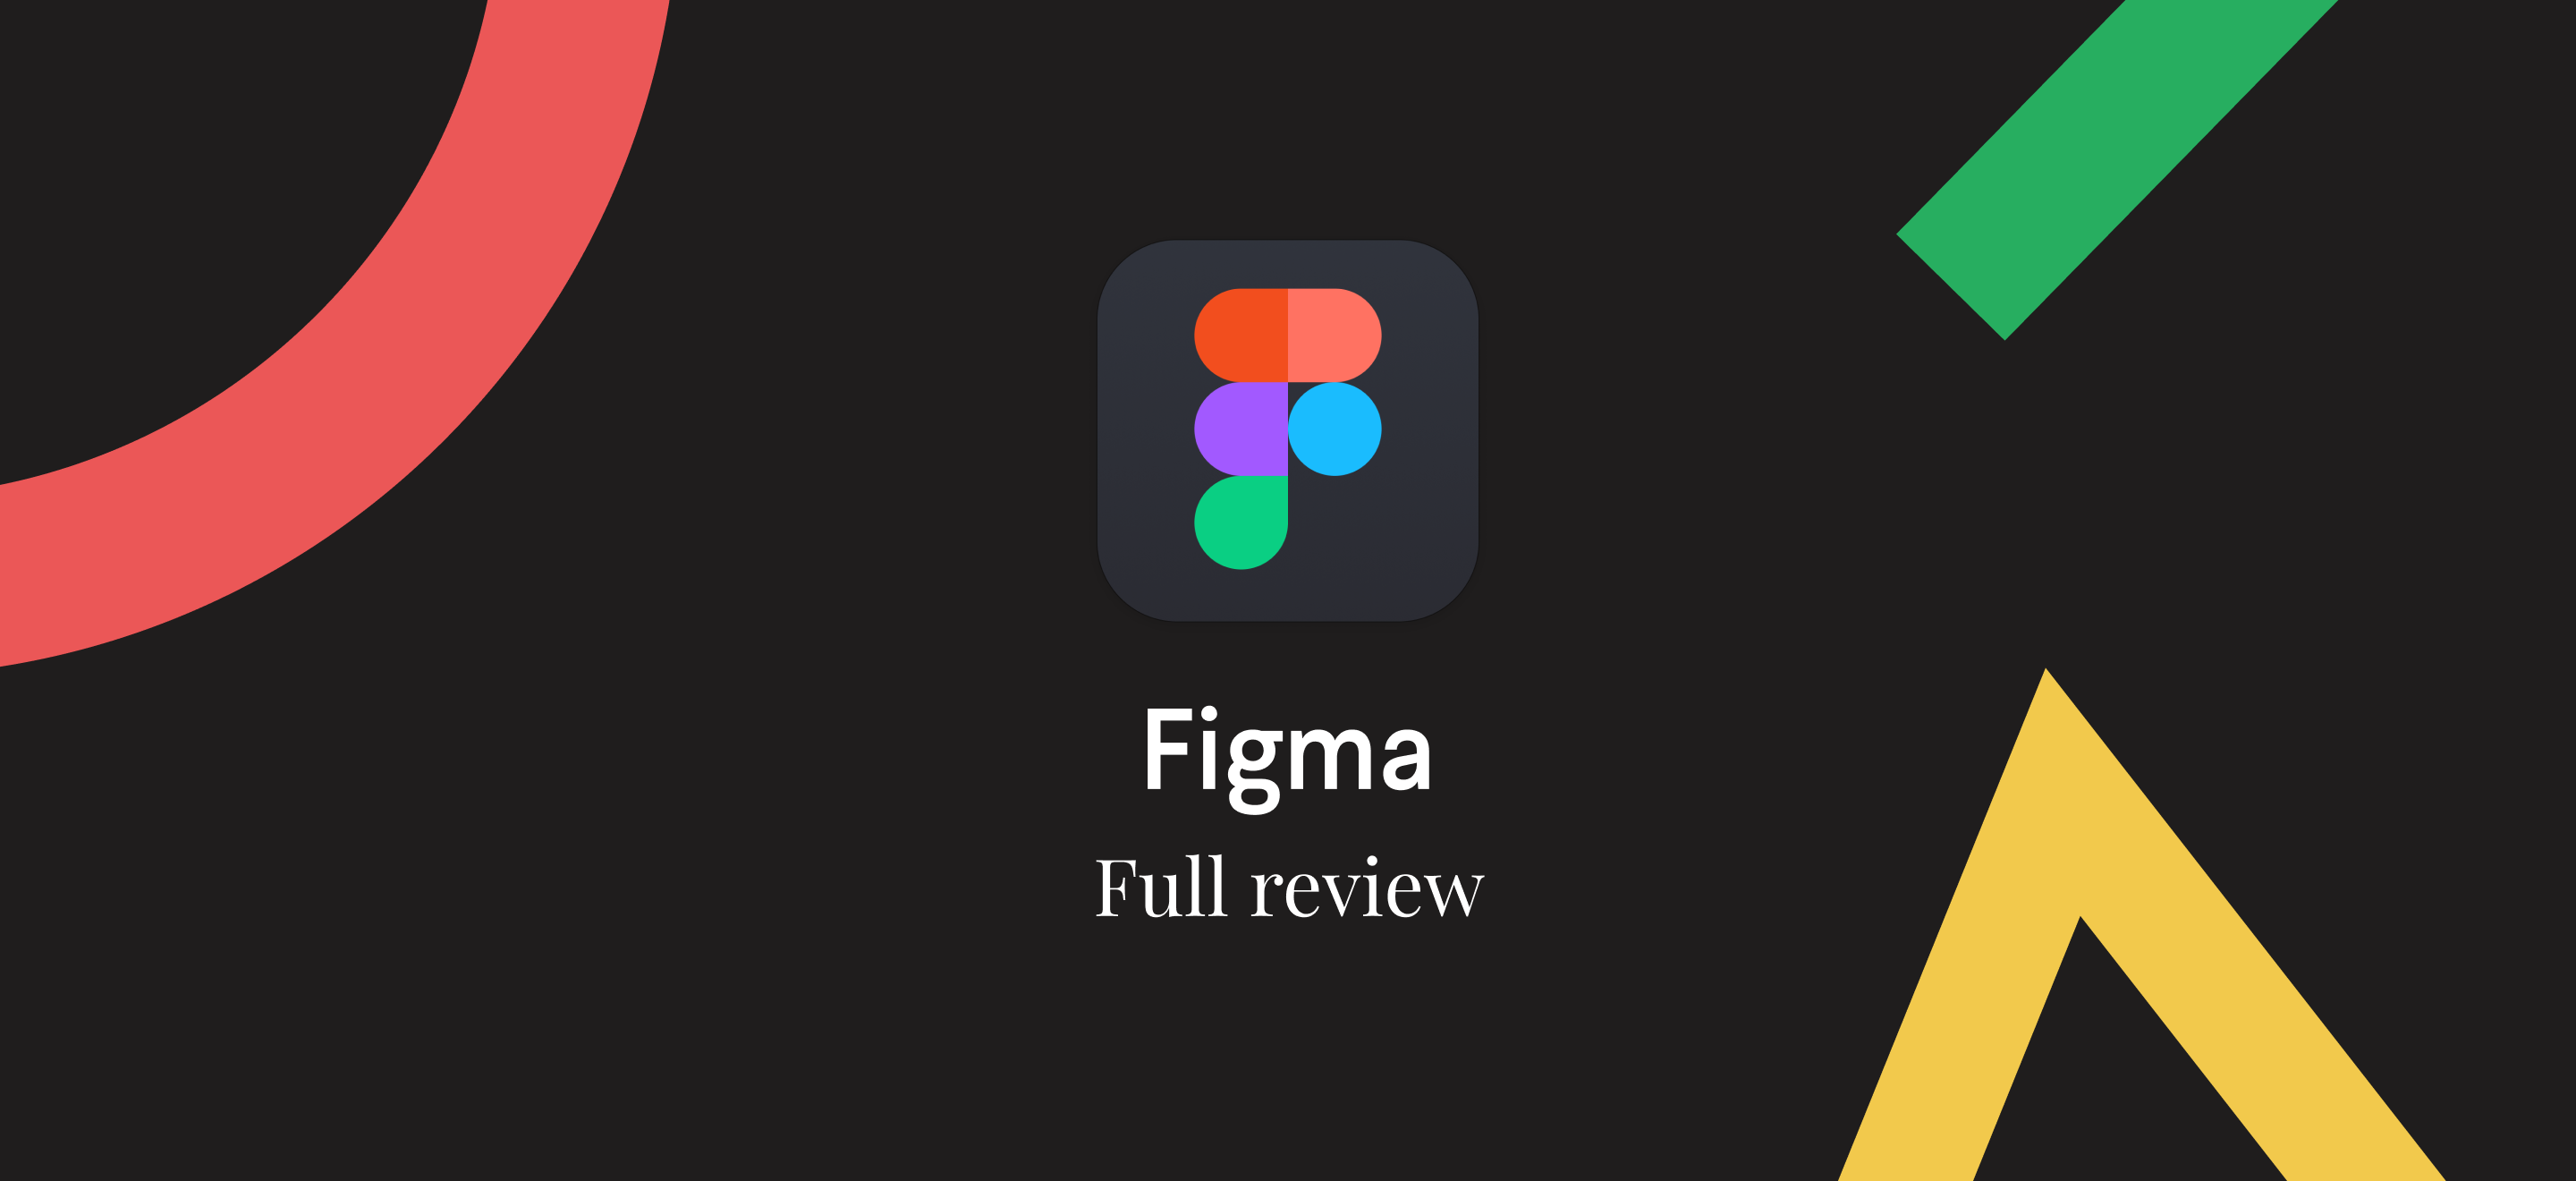 30 days deep into Figma — Full review - Noteworthy - The